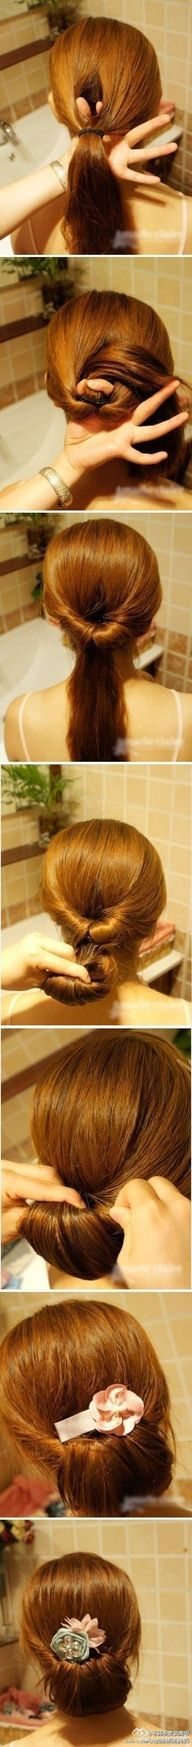 An Updated Chignon - Lazy Hair Day Summer Hairstyles, Pretty Hairstyles, Easy Hairstyles, Girl Hairstyles, Wedding Hairstyles, Latest Hairstyles, Creative Hairstyles, Wedding Updo, Interview Hairstyles